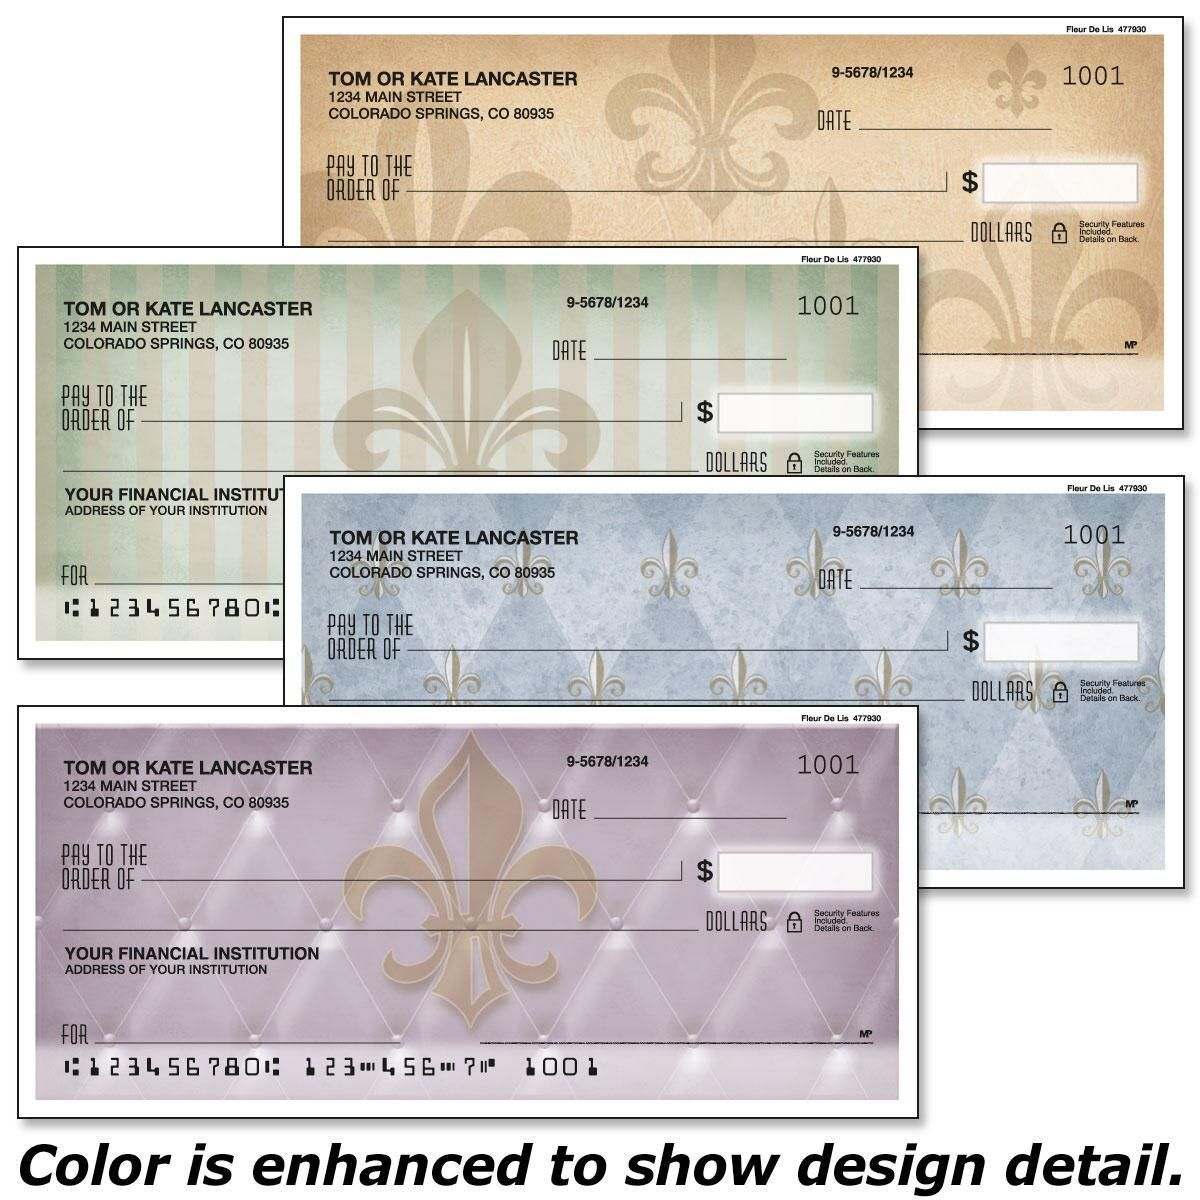 Bronze Fleur DeLis Checks | Current Catalog